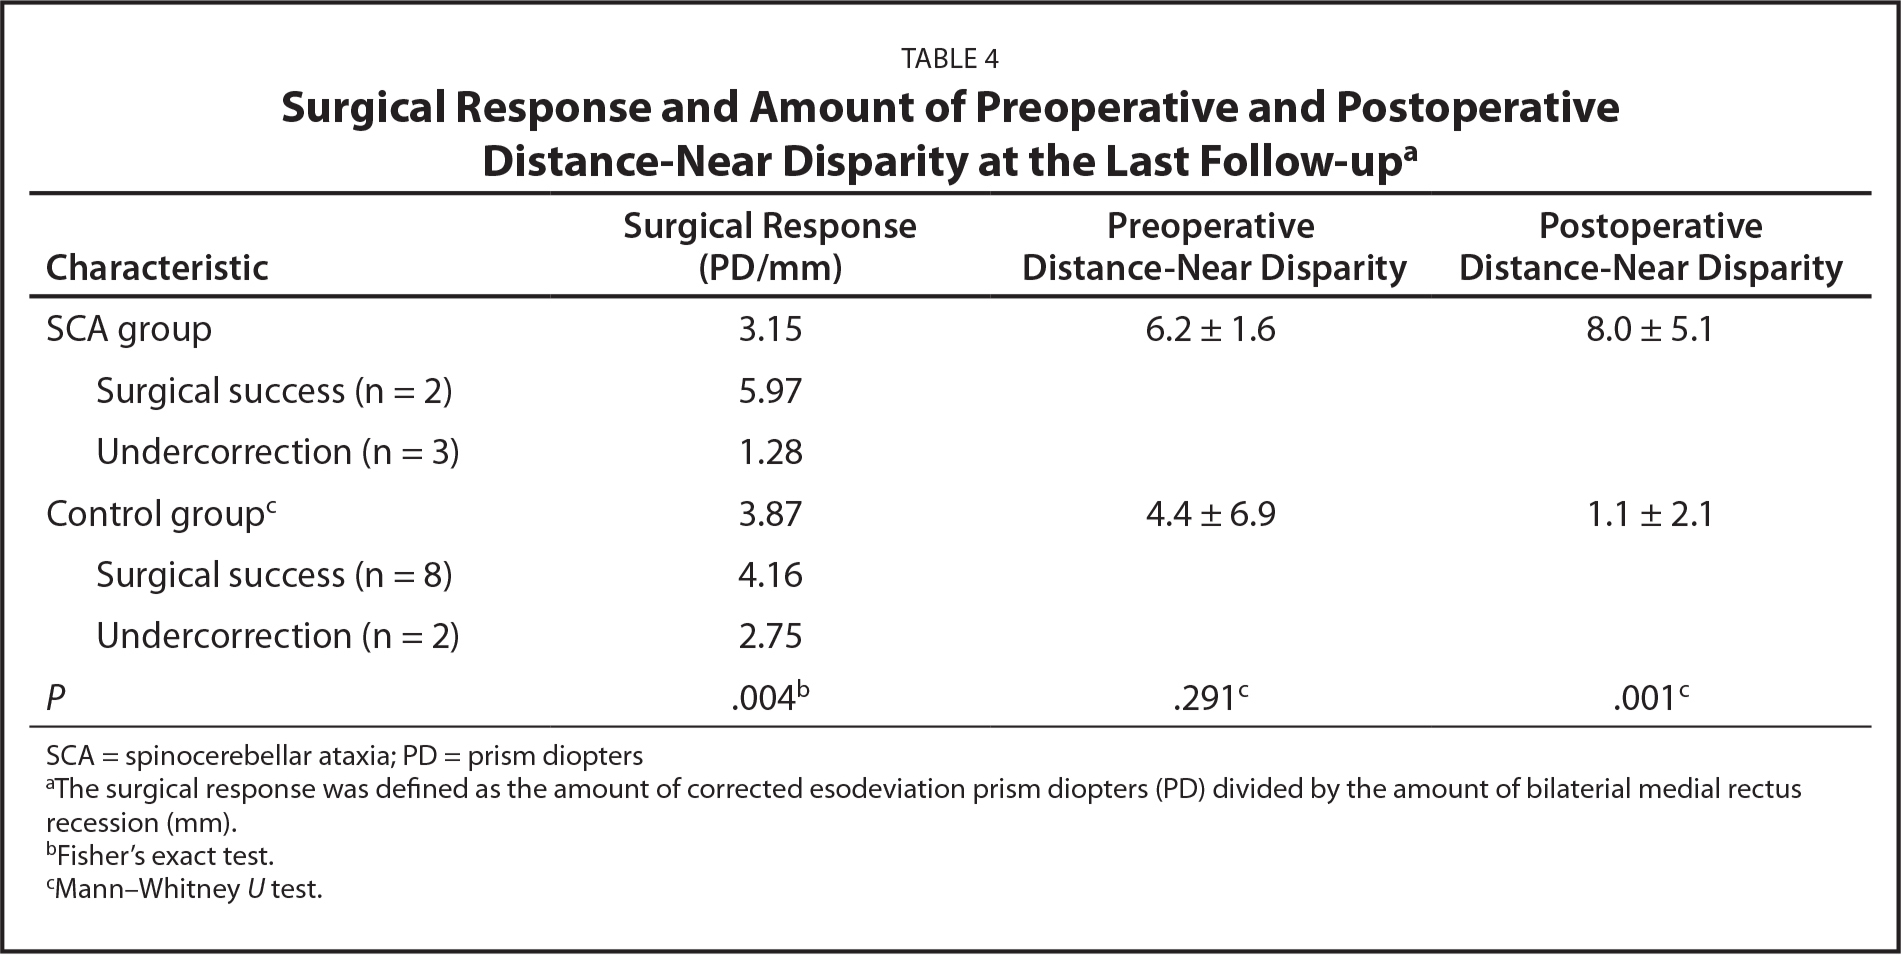 Surgical Response and Amount of Preoperative and Postoperative Distance-Near Disparity at the Last Follow-upa